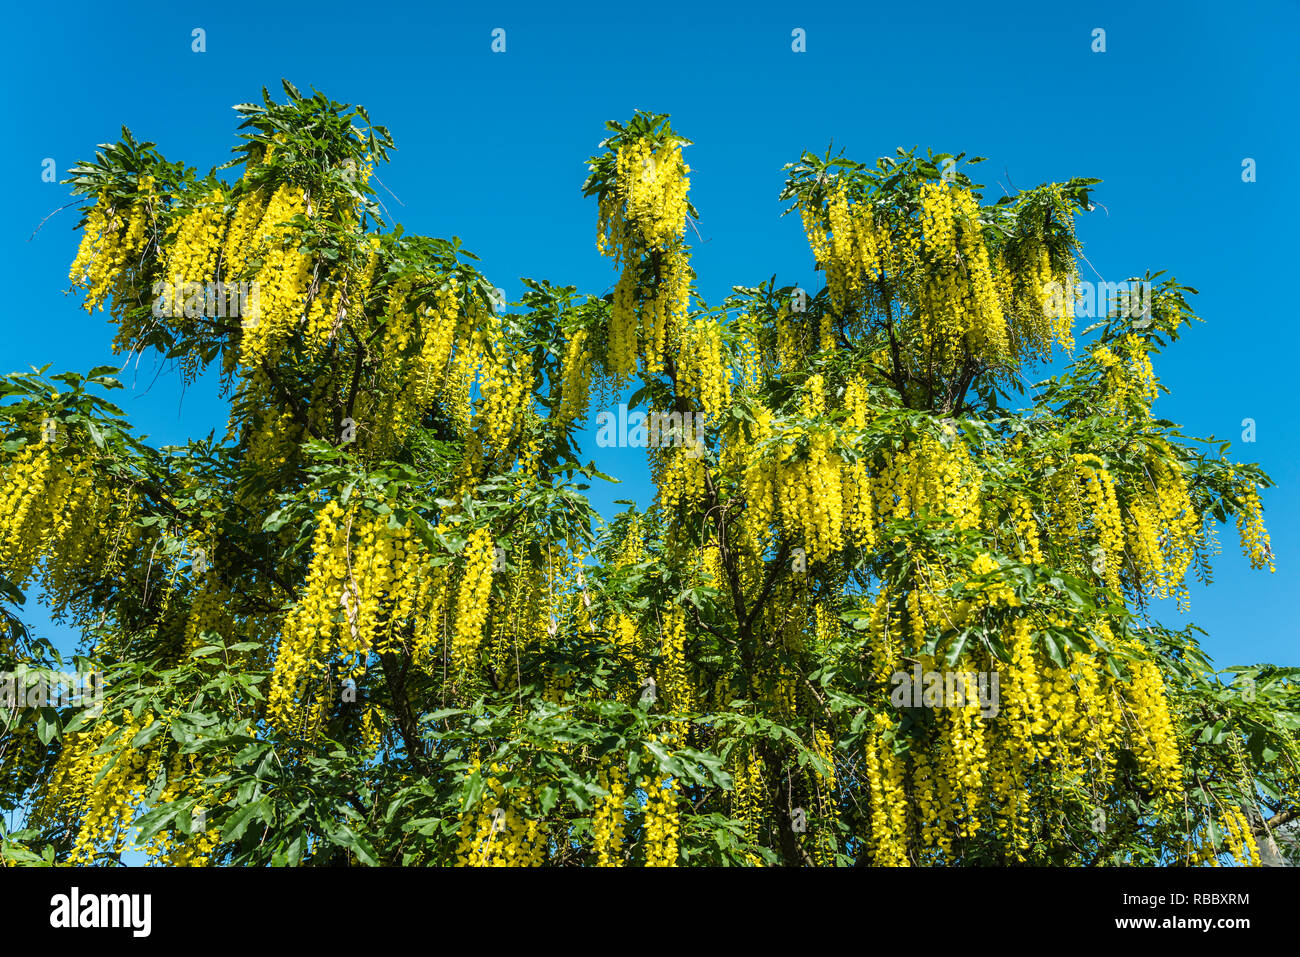 The Yellow Hanging Flowers Of The Golden Chain Tree In Inverness